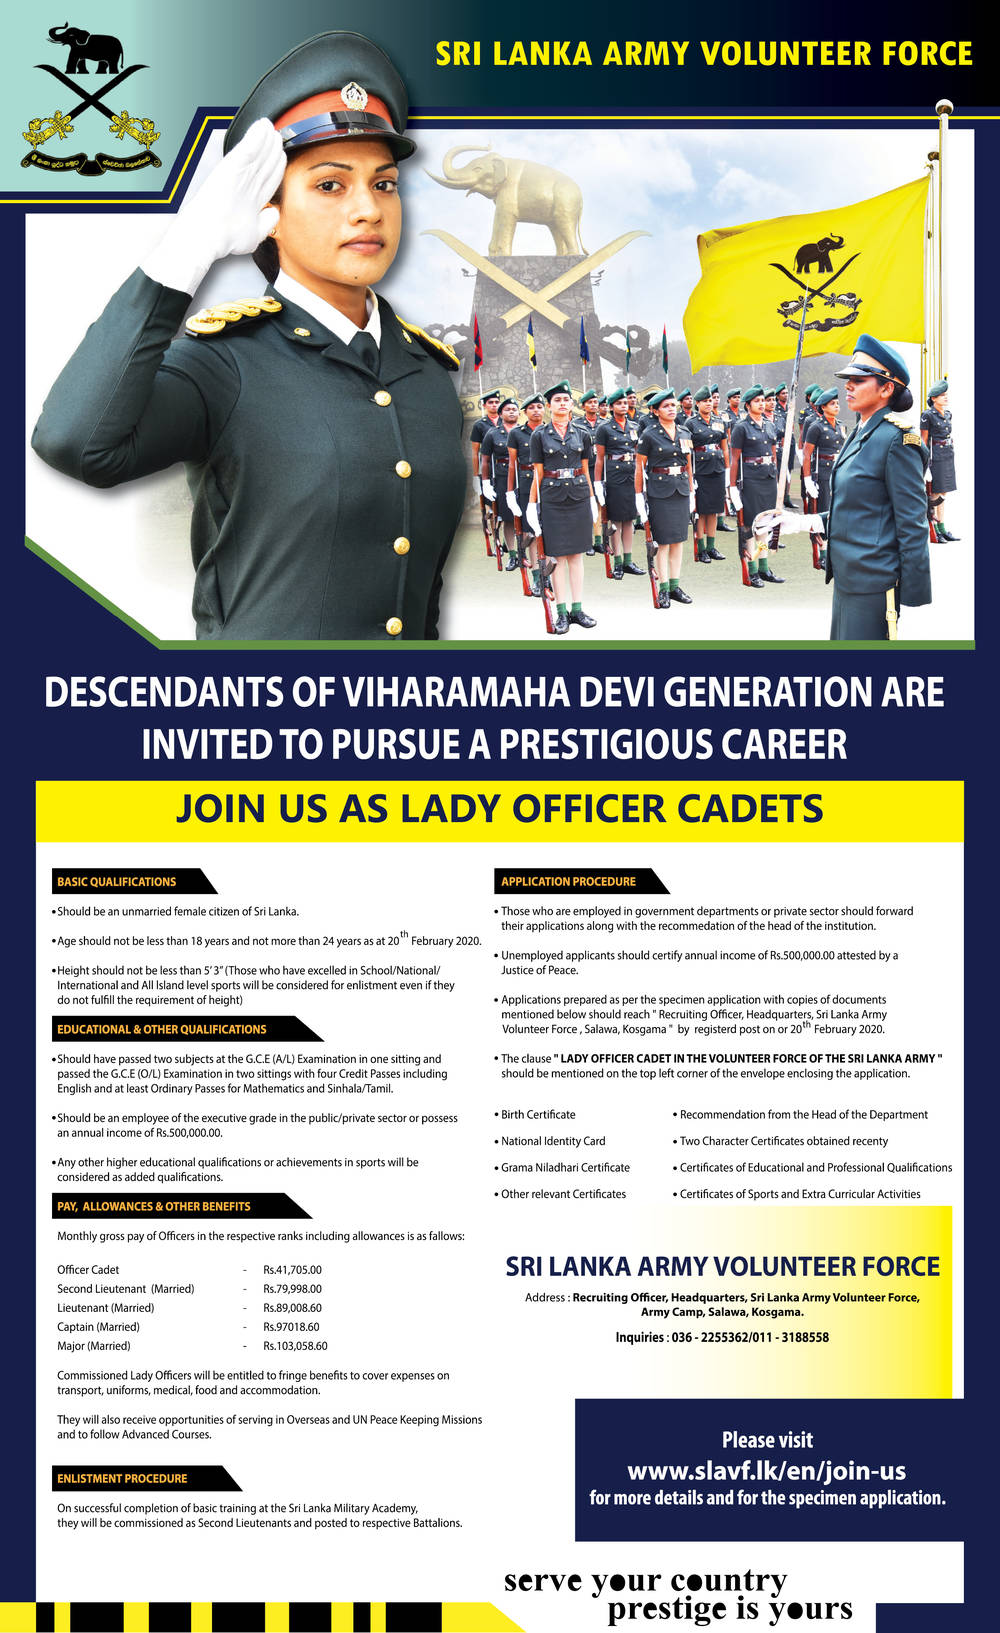 Lady Officer Cadets - Sri Lanka Army Volunteer Force